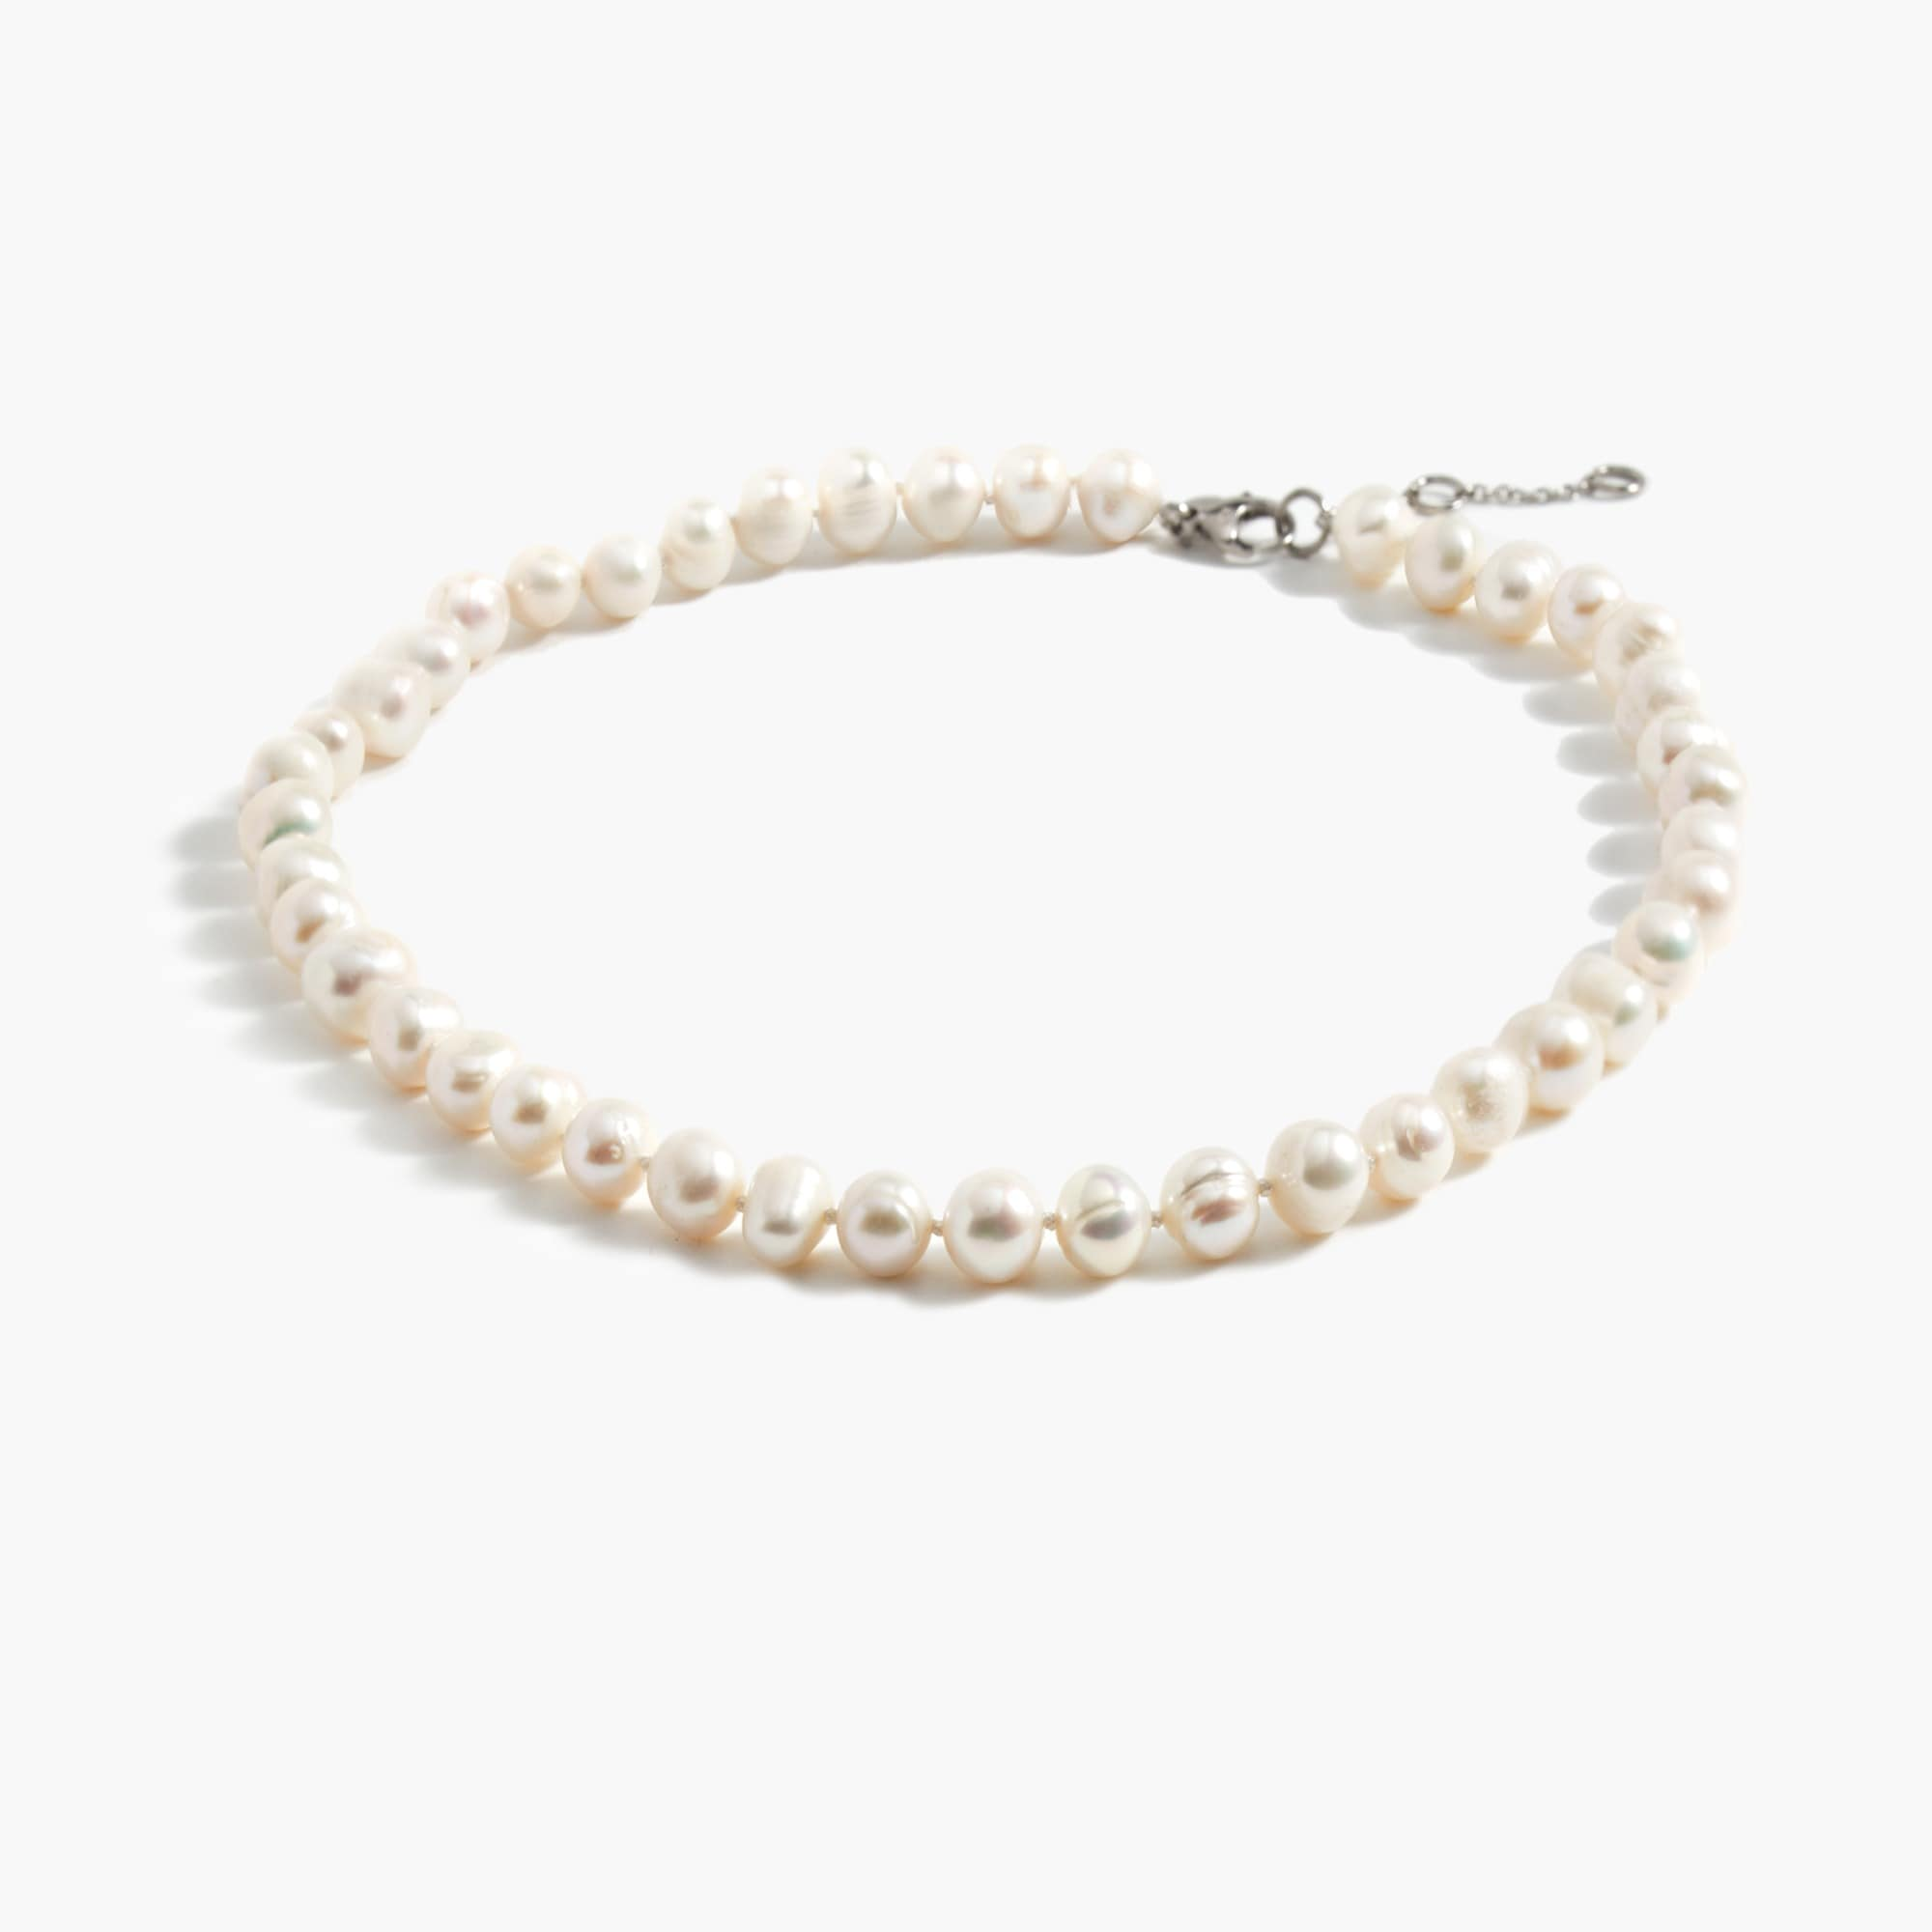 freshwater pearl necklace : women's necklaces